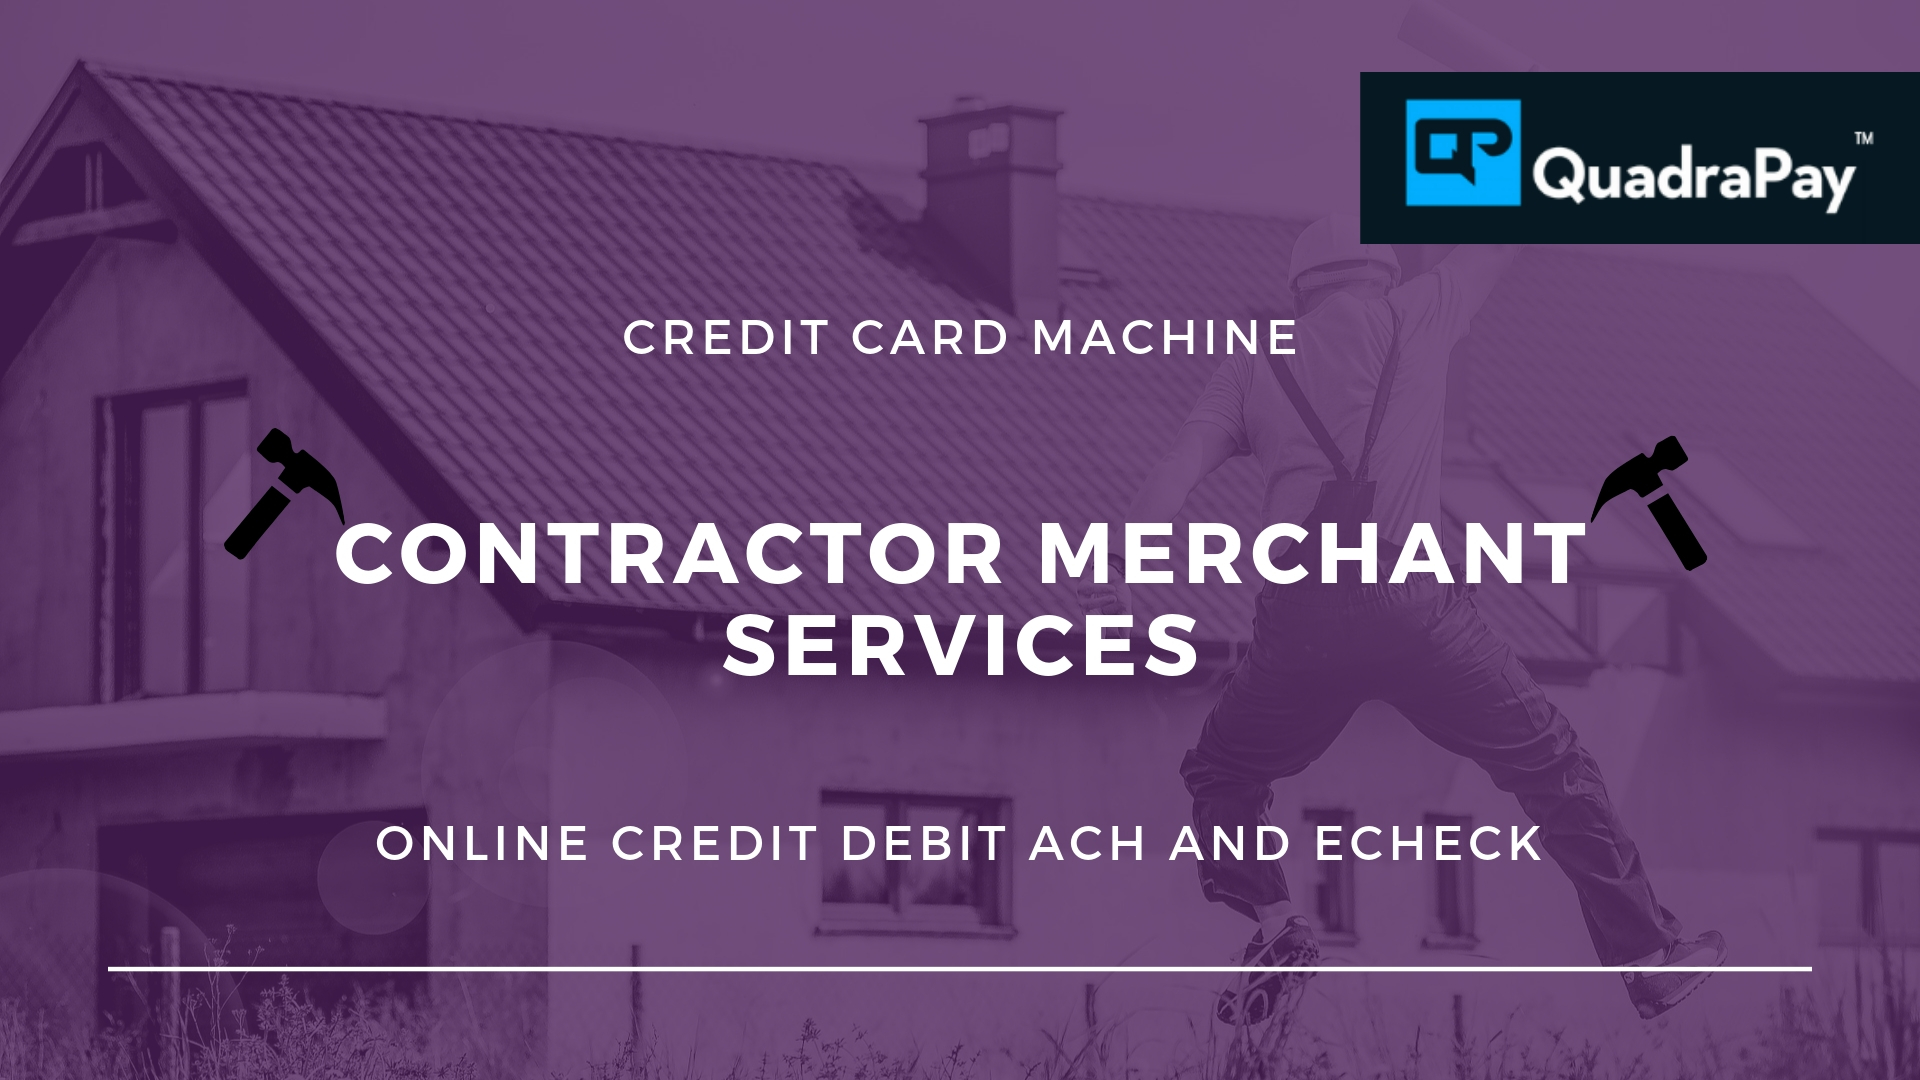 CONTRACTOR MERCHANT SERVICES BY QUADRAPAY